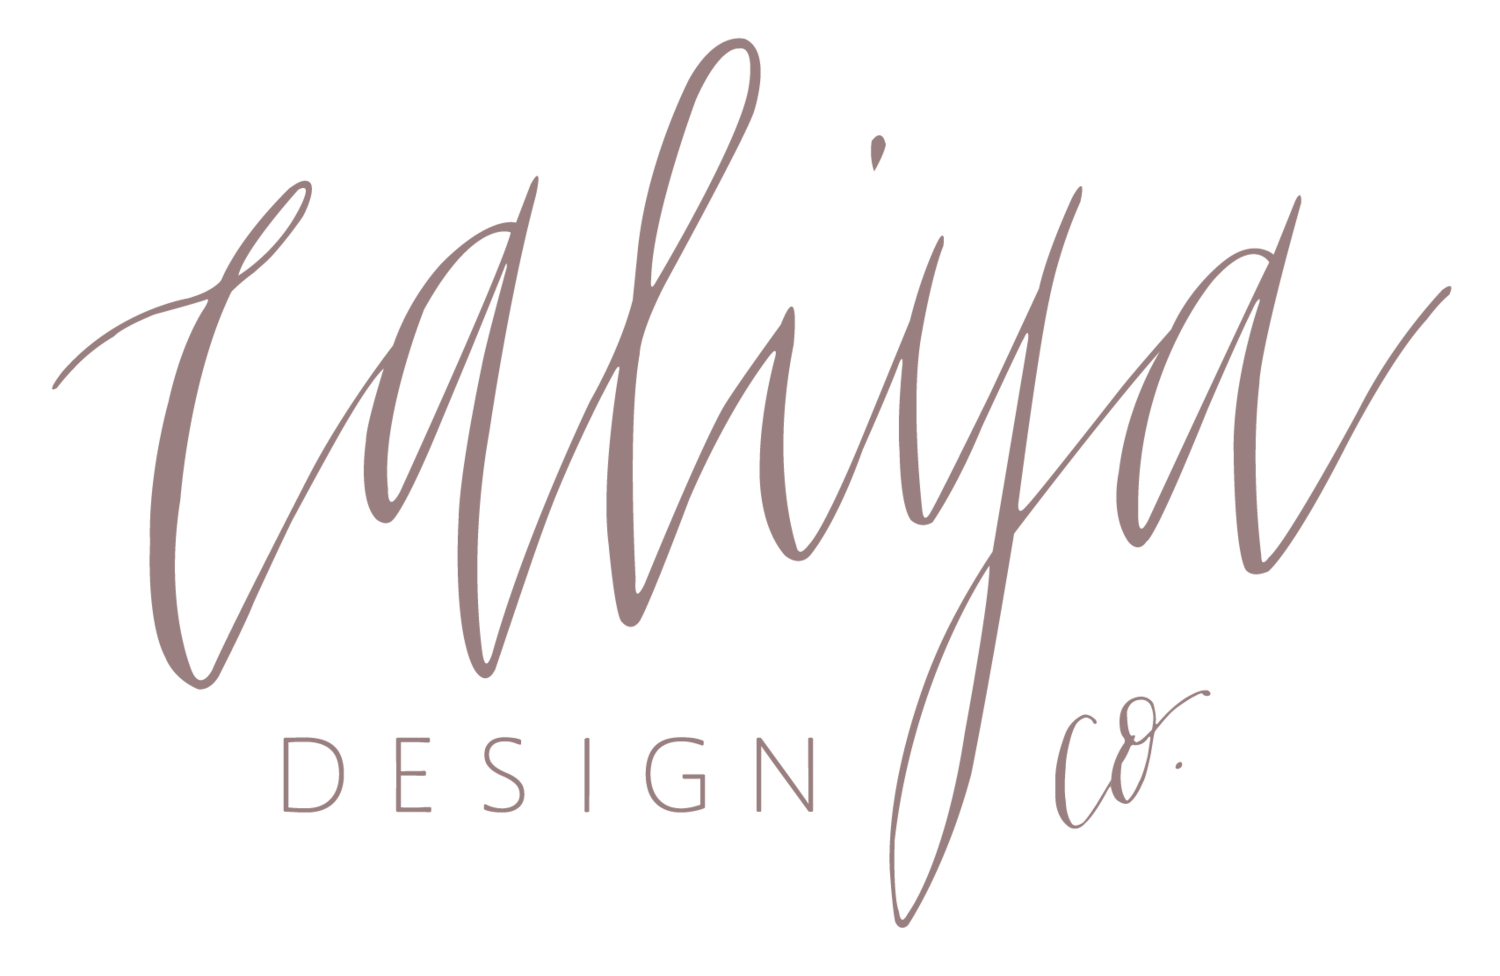 Caliya Design Co.